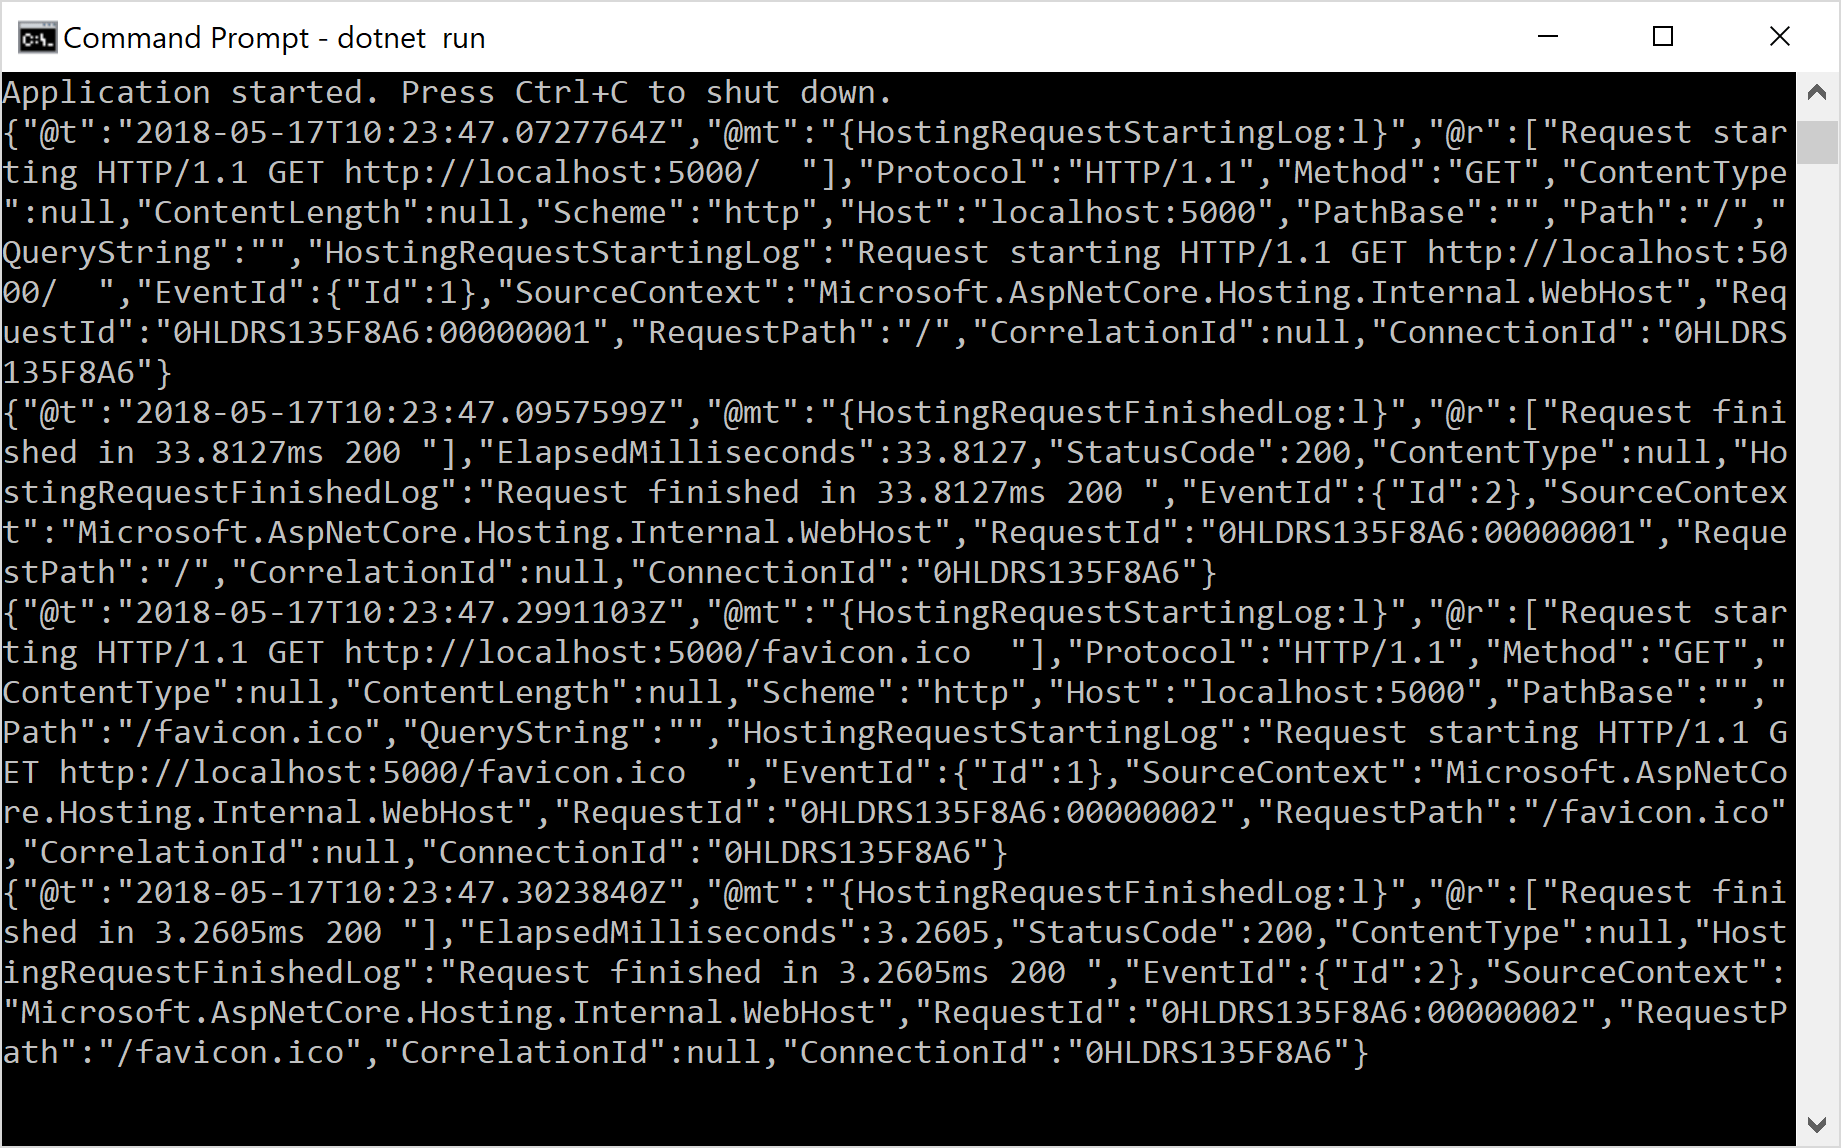 Image of logs written to the console as JSON using CompactJsonFormatter